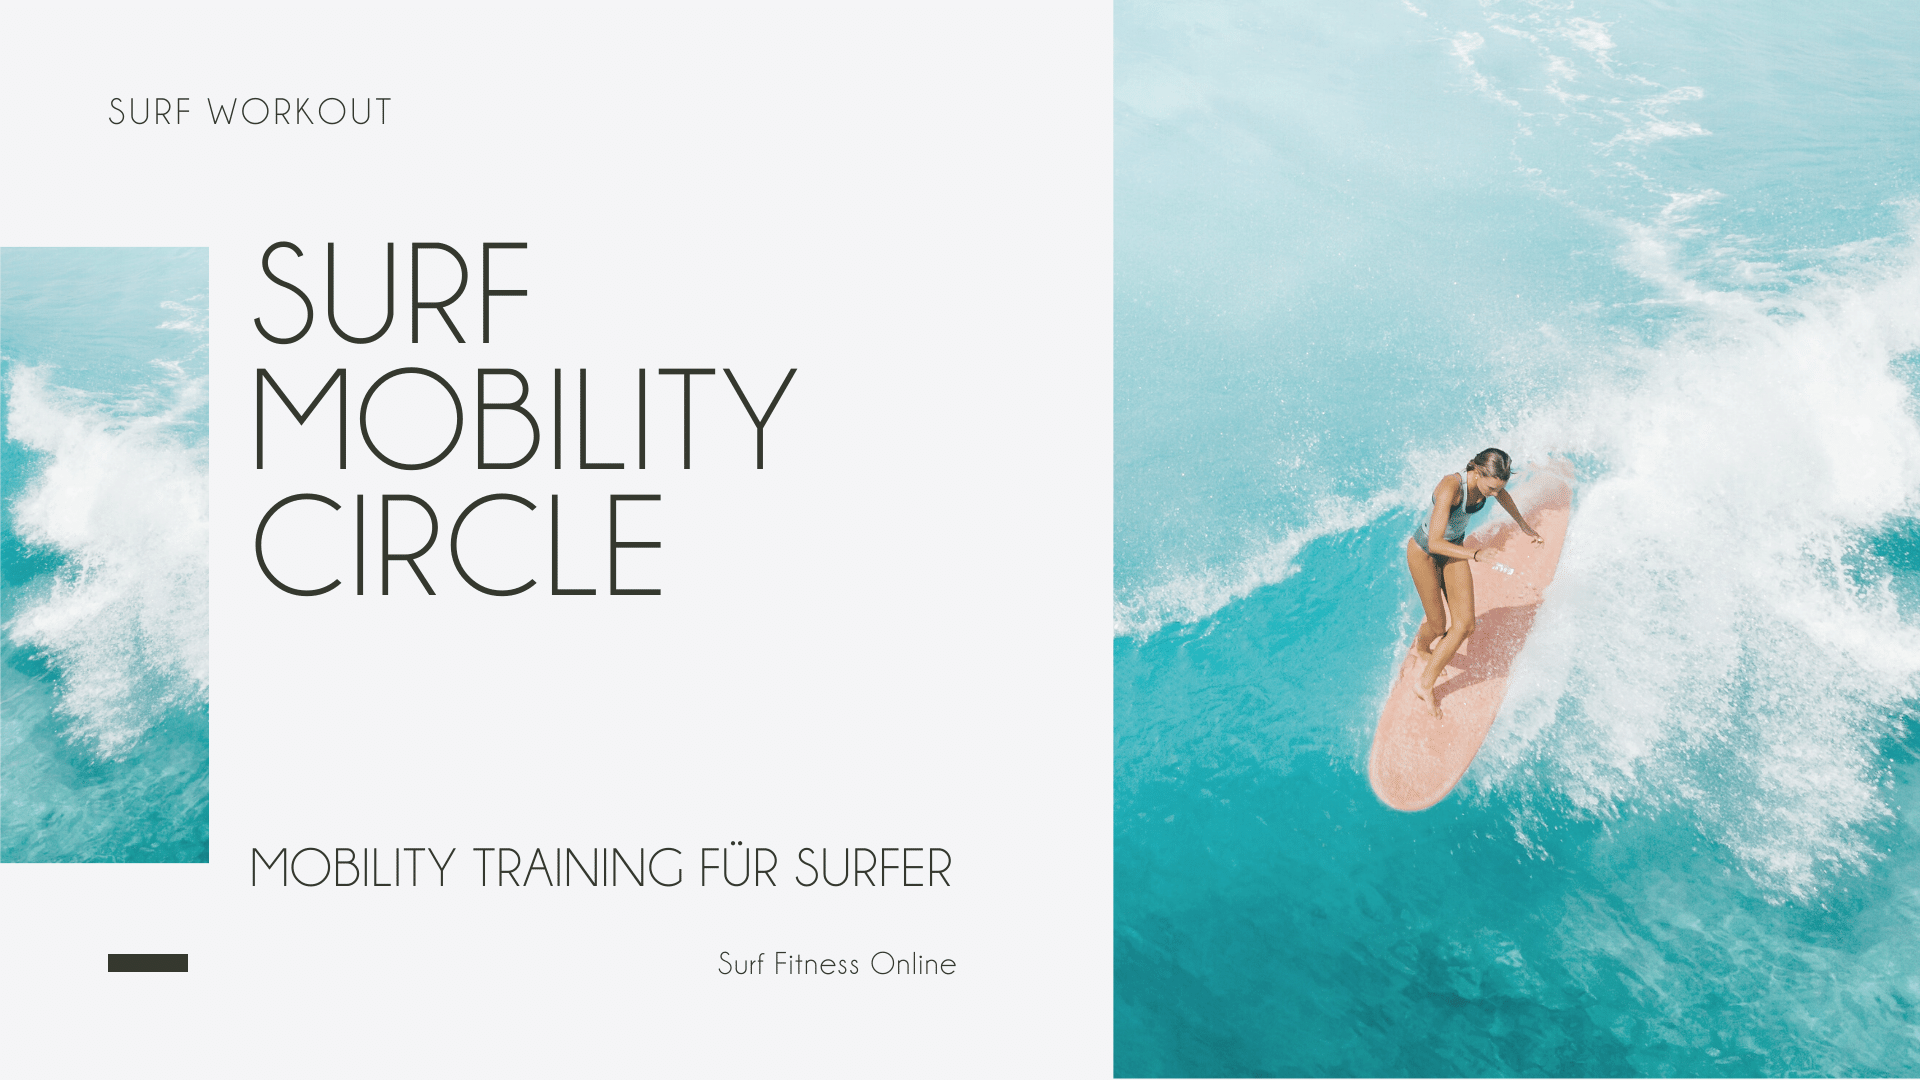 Surf Mobility Circle Mobility Training für Surfer